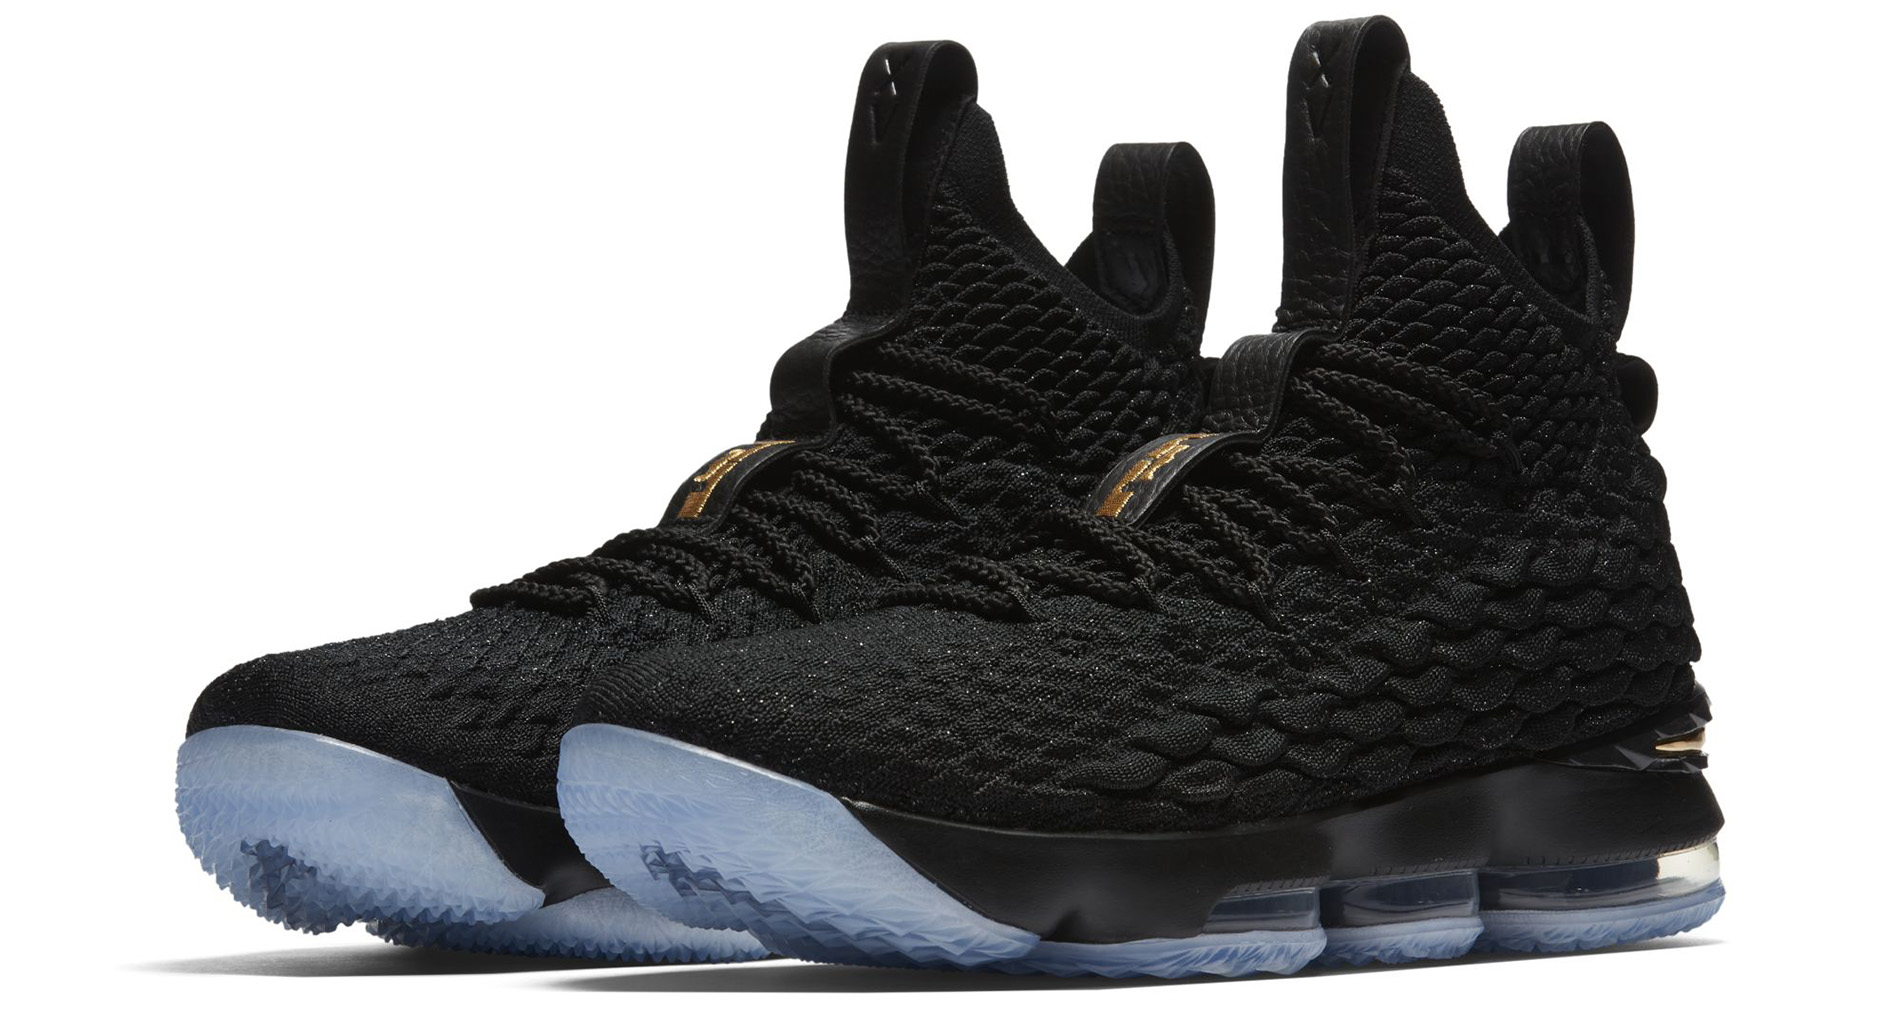 43f83ddc7e9 Nike LeBron 15 Black Gold is Releasing Soon